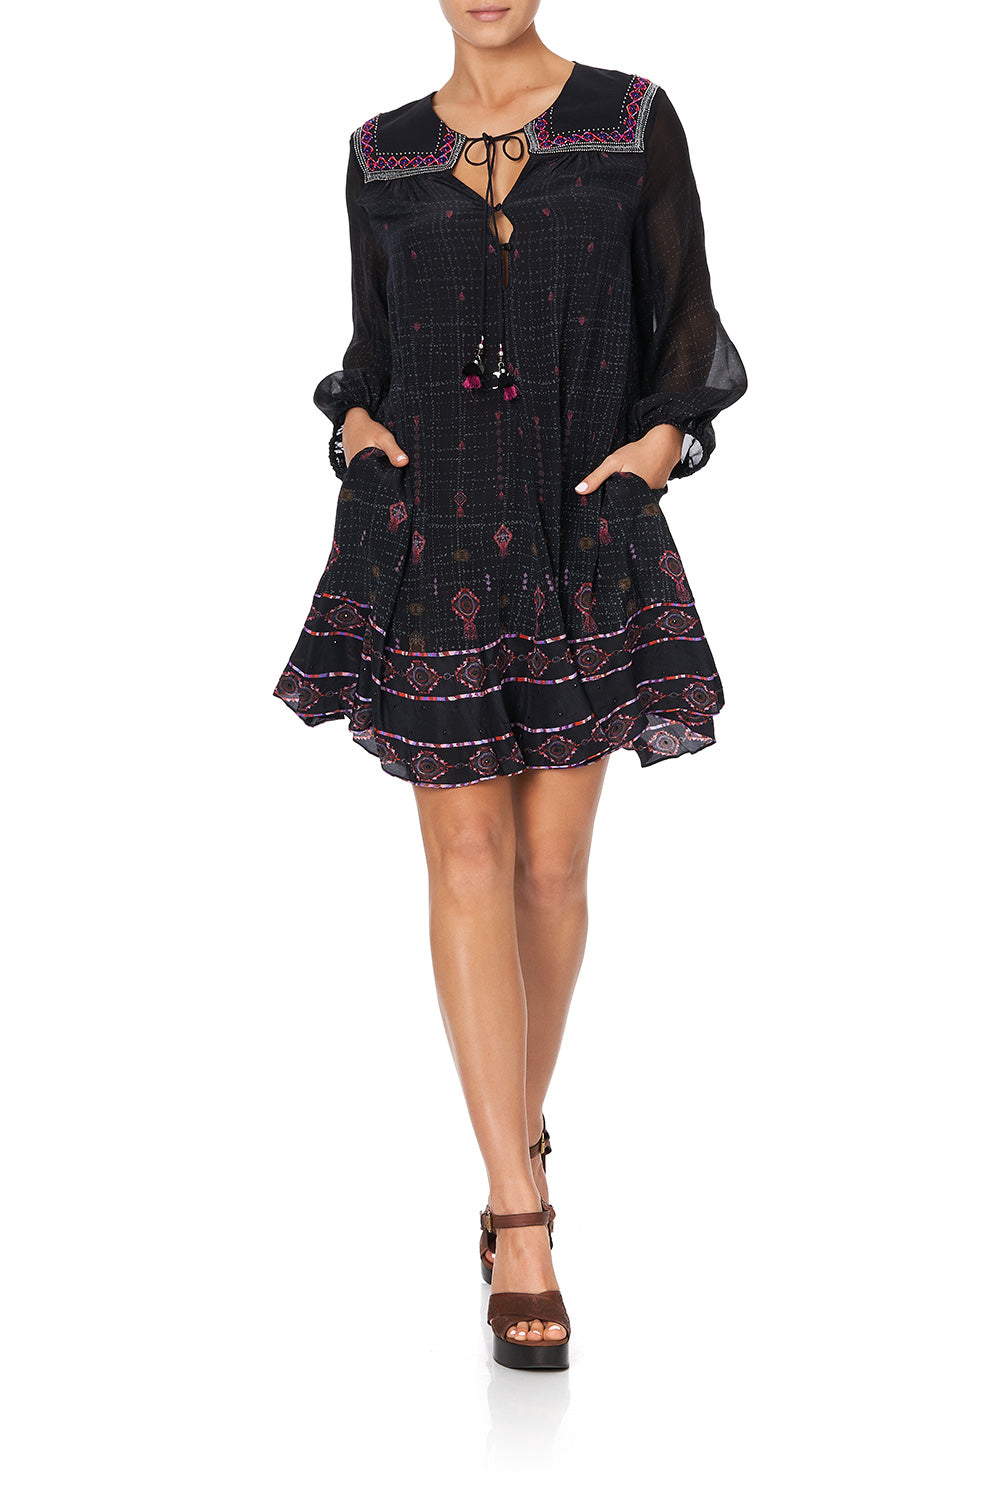 BUTTON UP DRESS WITH YOKE MINA MINA